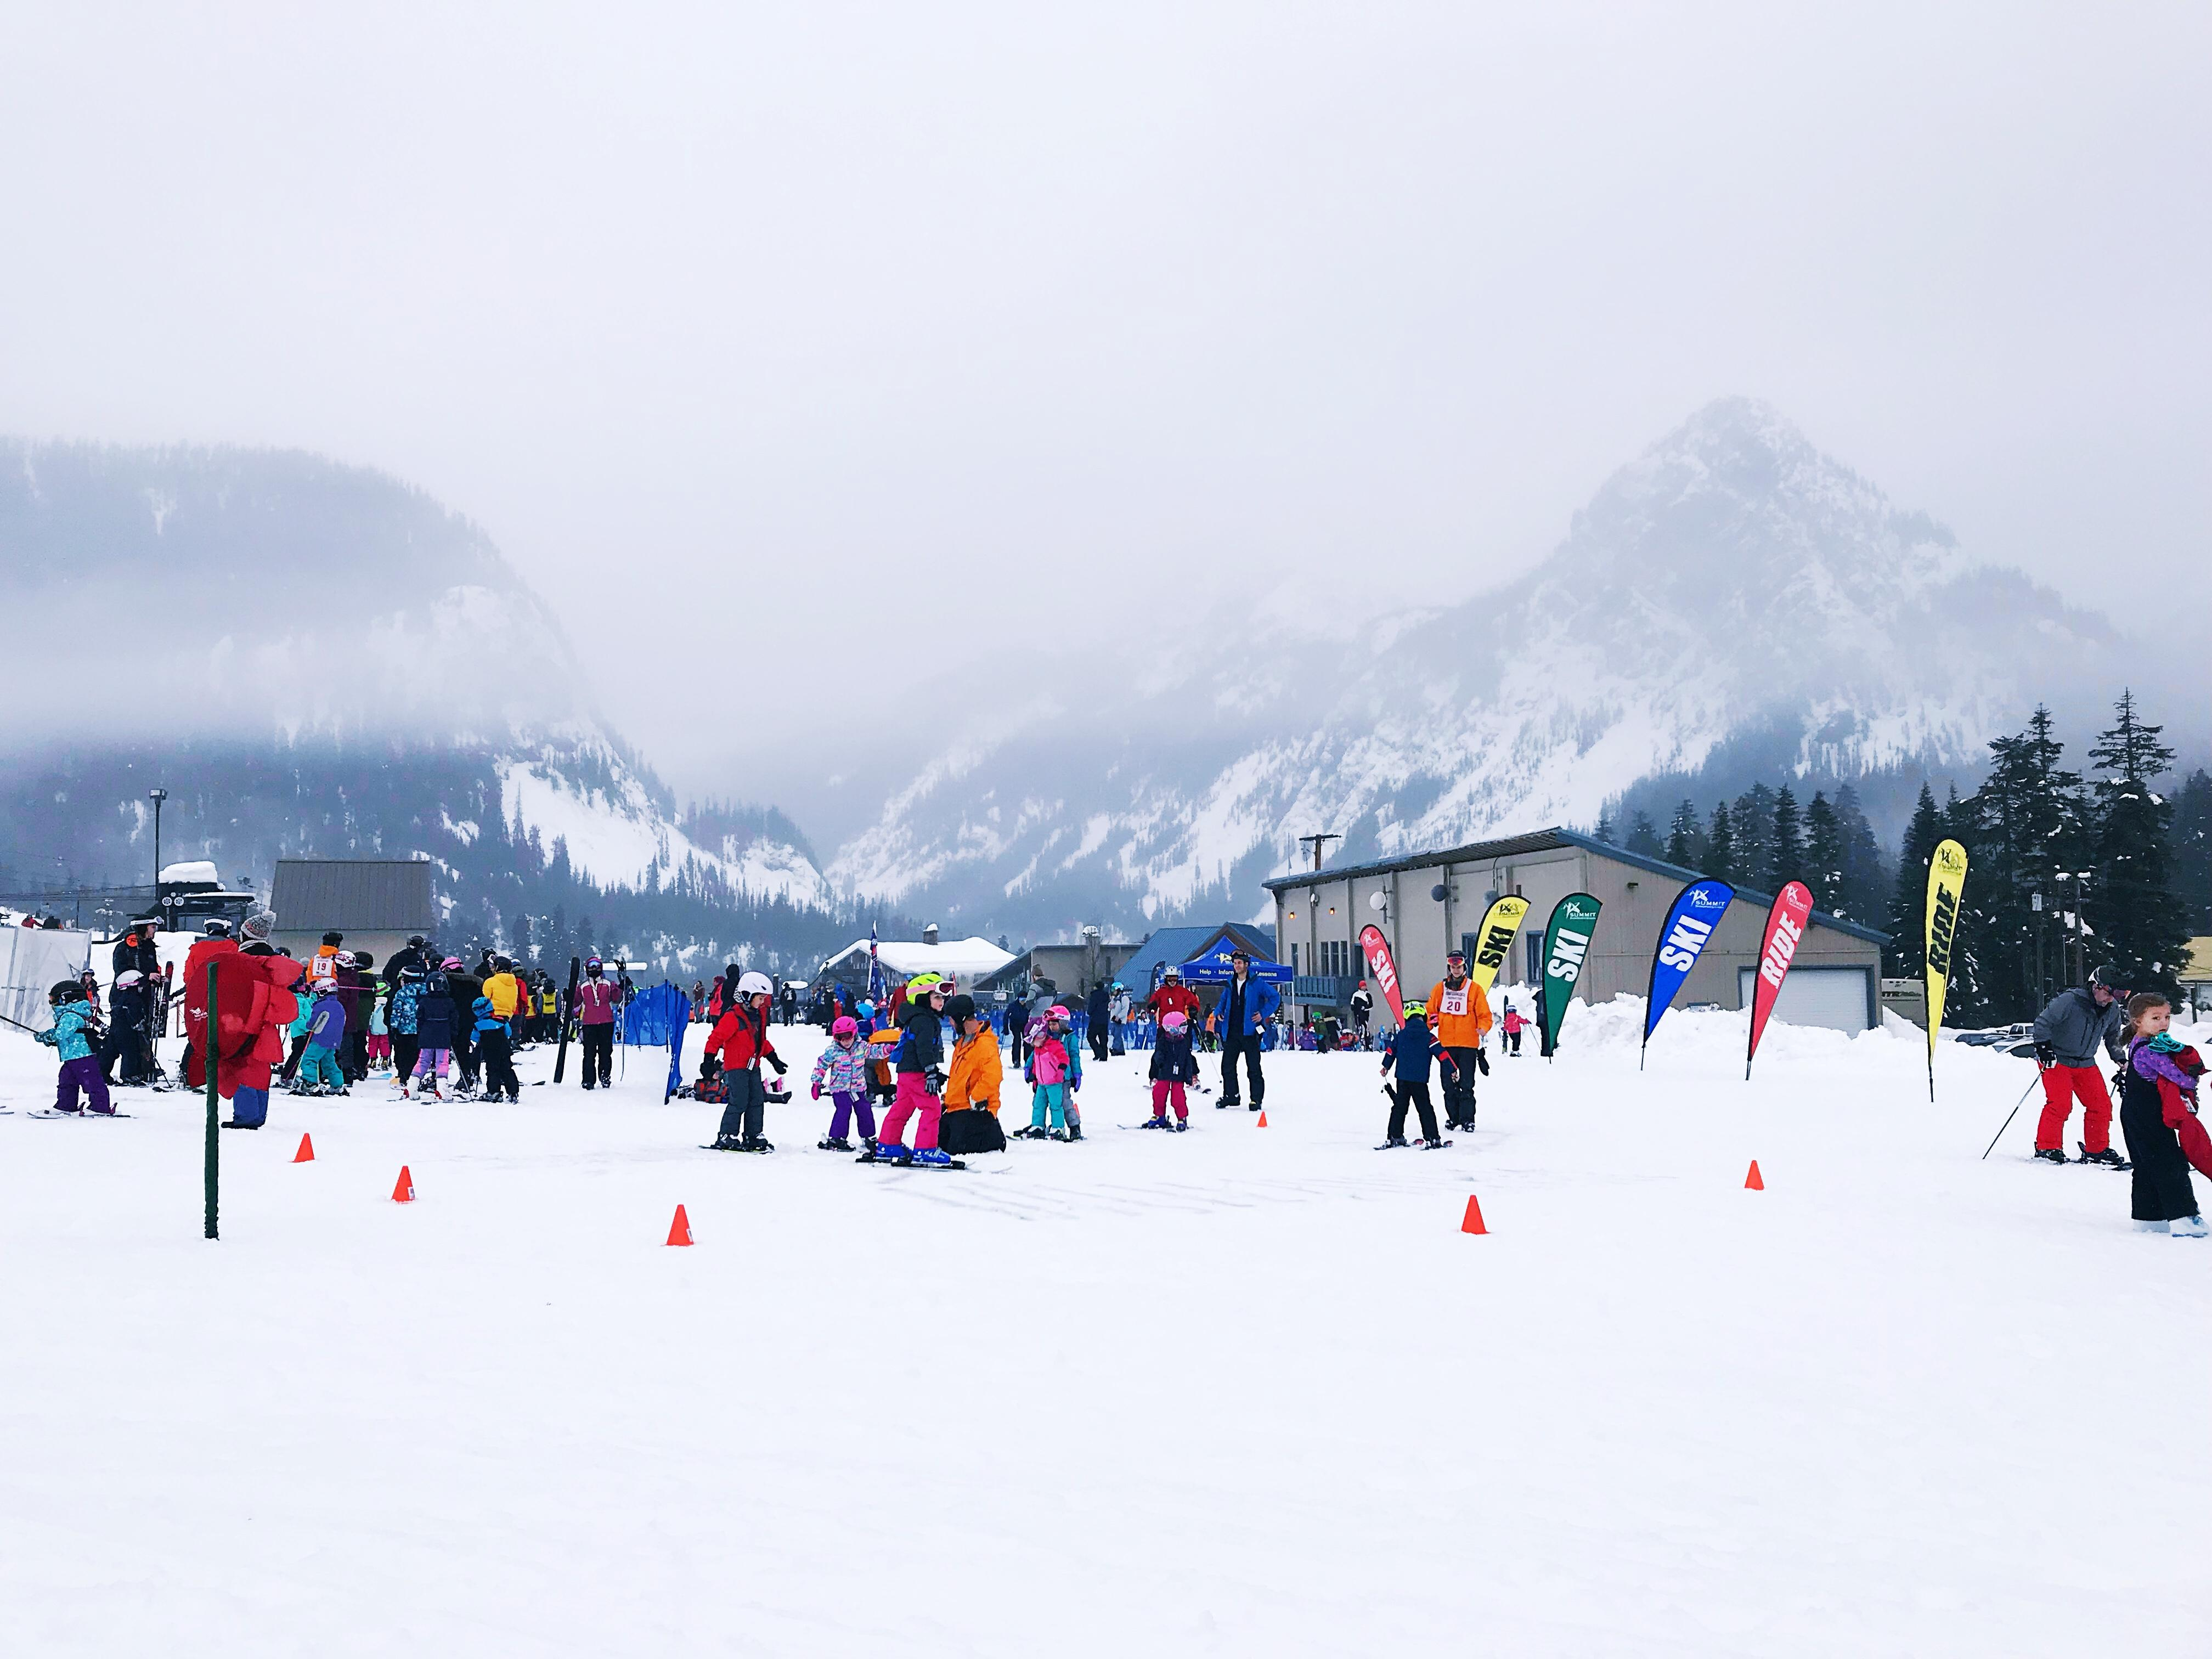 The slopes were packed with skiers of all abilities. (Image: Rebecca Mongrain/Seattle Refined){&amp;nbsp;}<p></p>